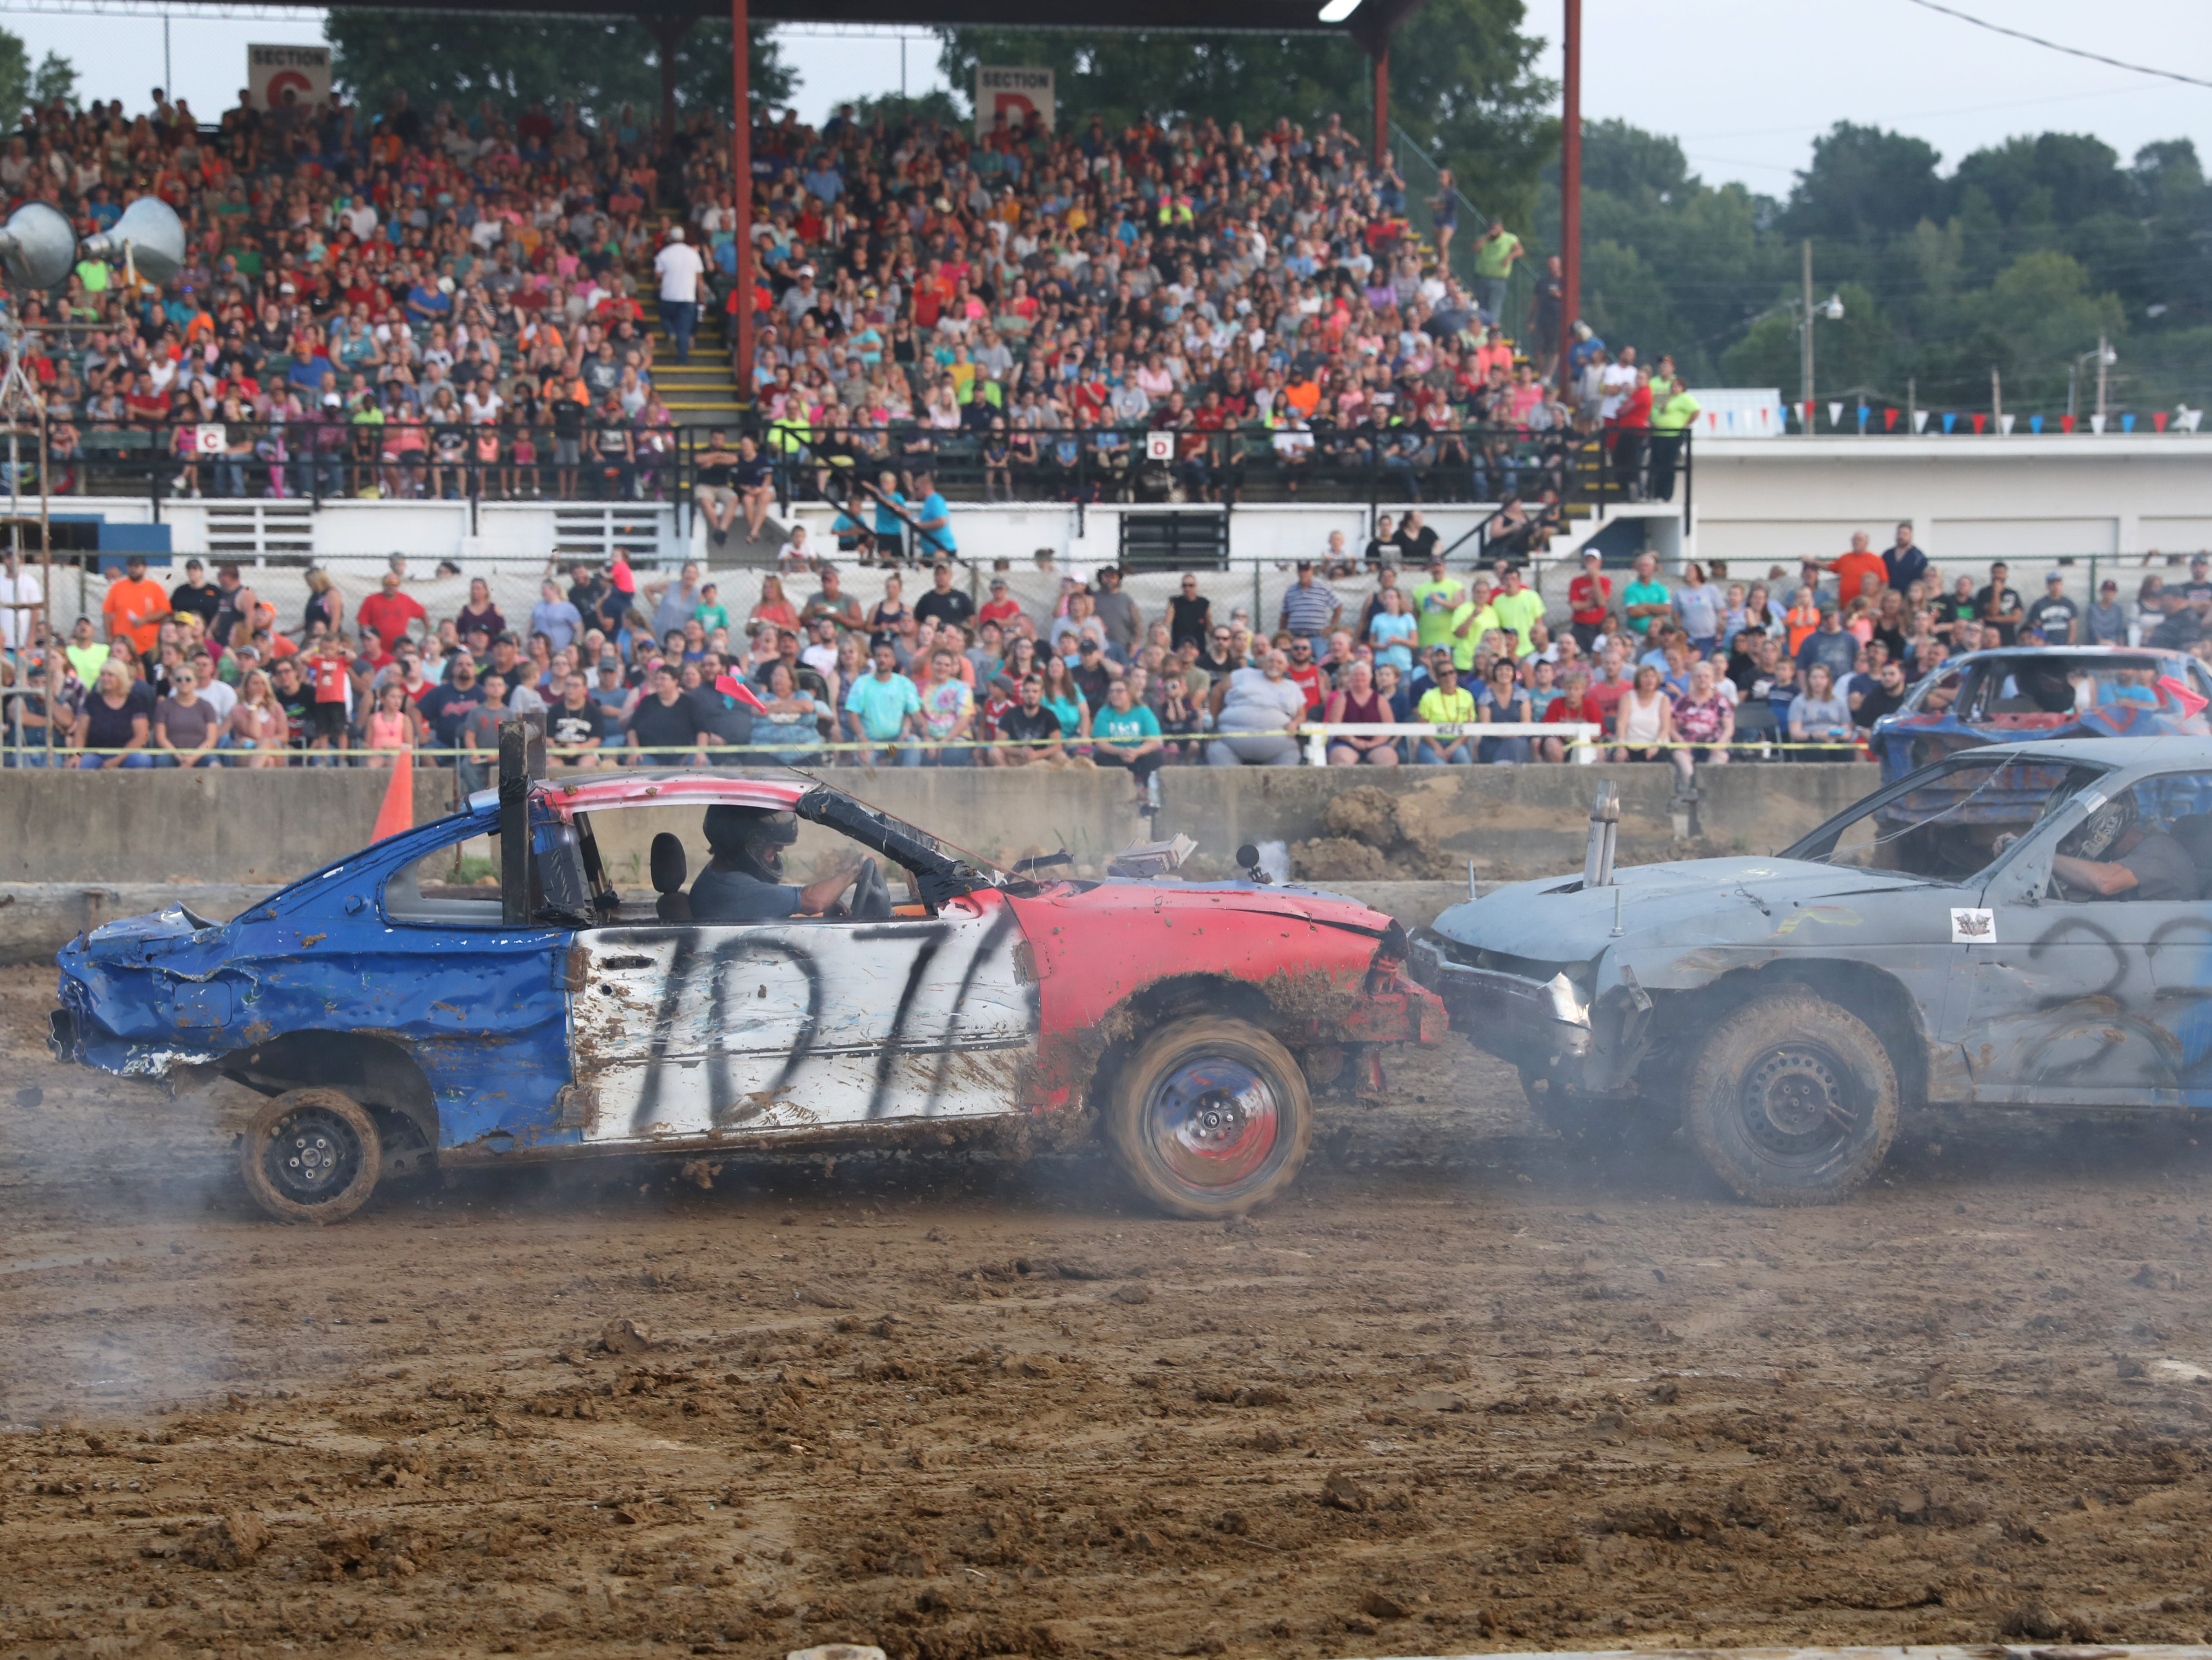 Robert Schrinder's 707 car and Scott Cordle's 33x car head on during the Sarge and Sons Demolition Derby at the Muskingum County Fair on Tuesday.